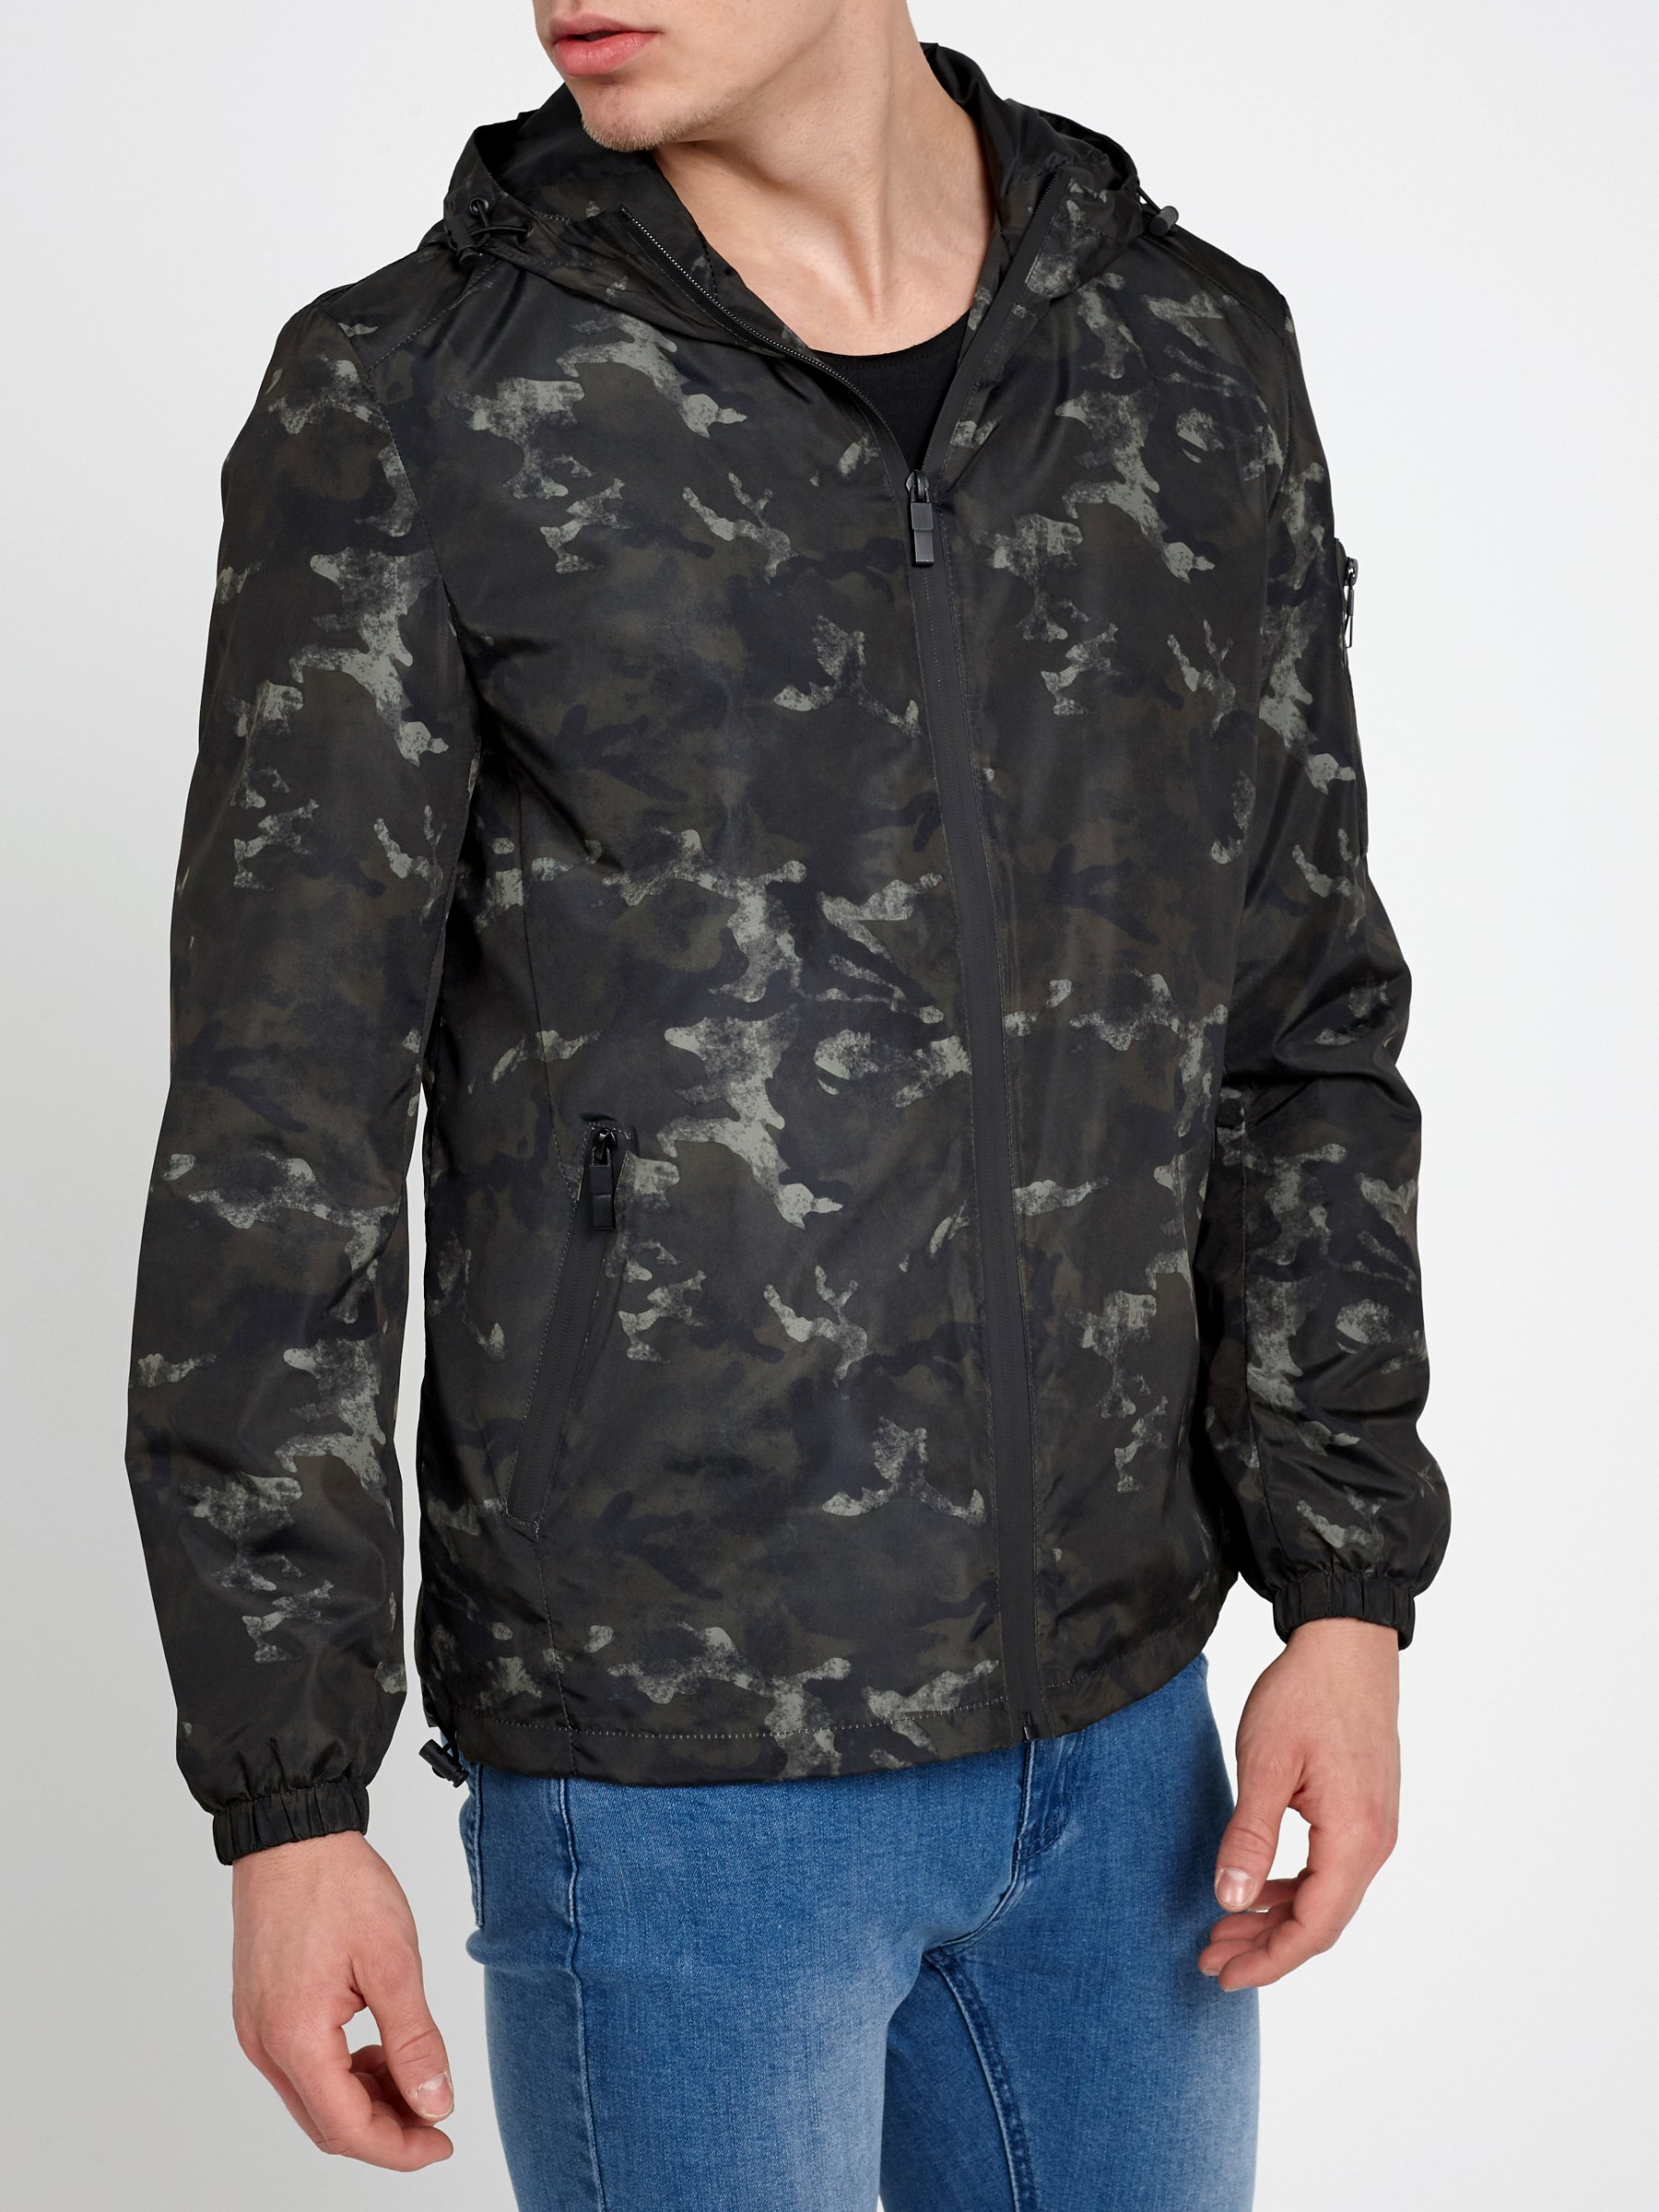 7d6cd92abf87 CAMO PRINT HOODED JACKET